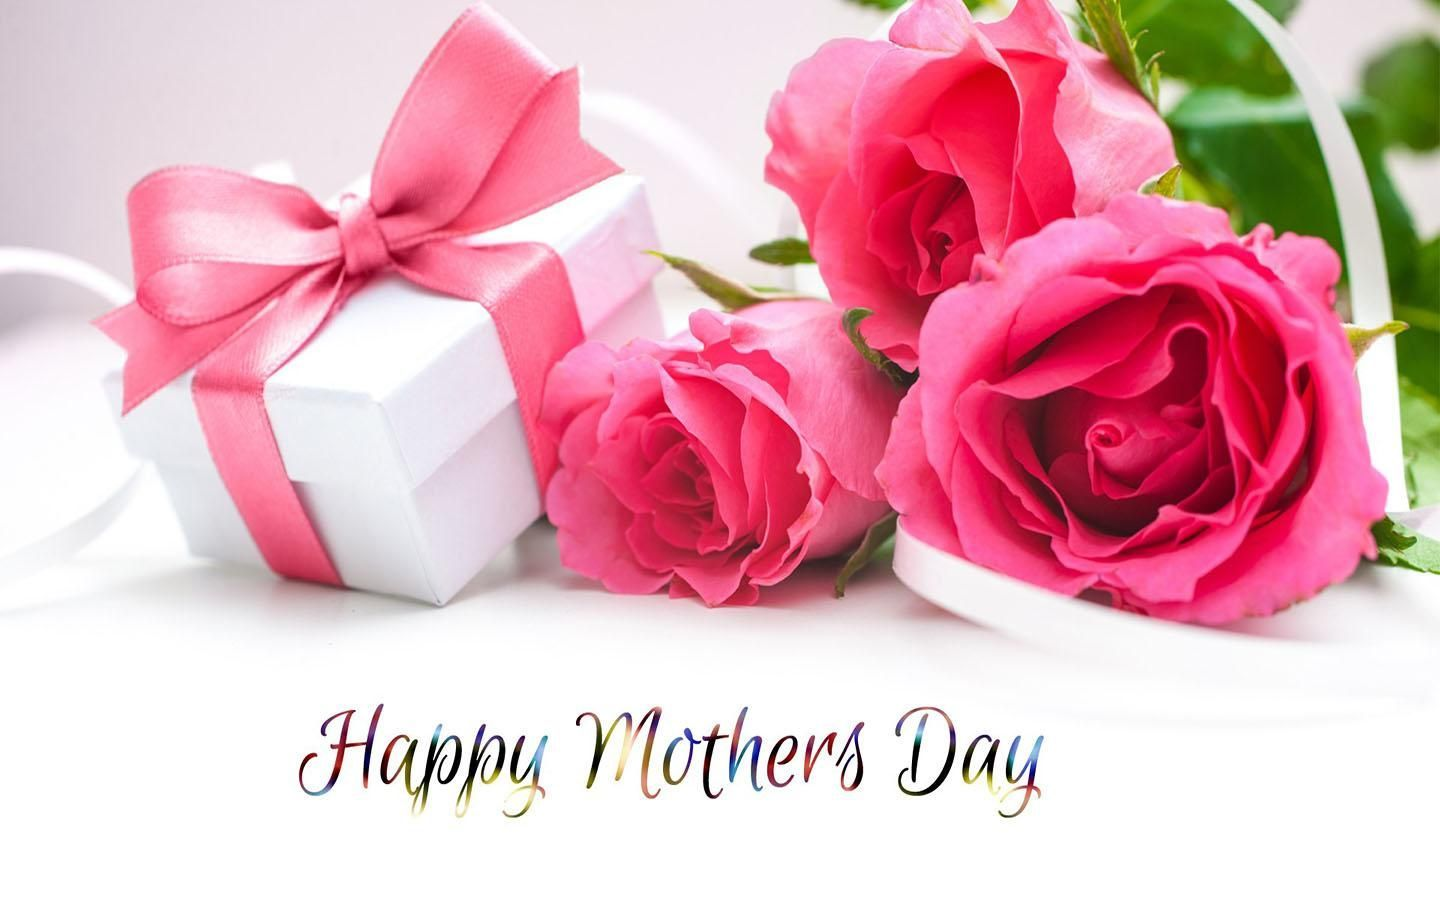 1440x900 Mothers Day Wallpaper | Cards and flowers | Happy mothers ...